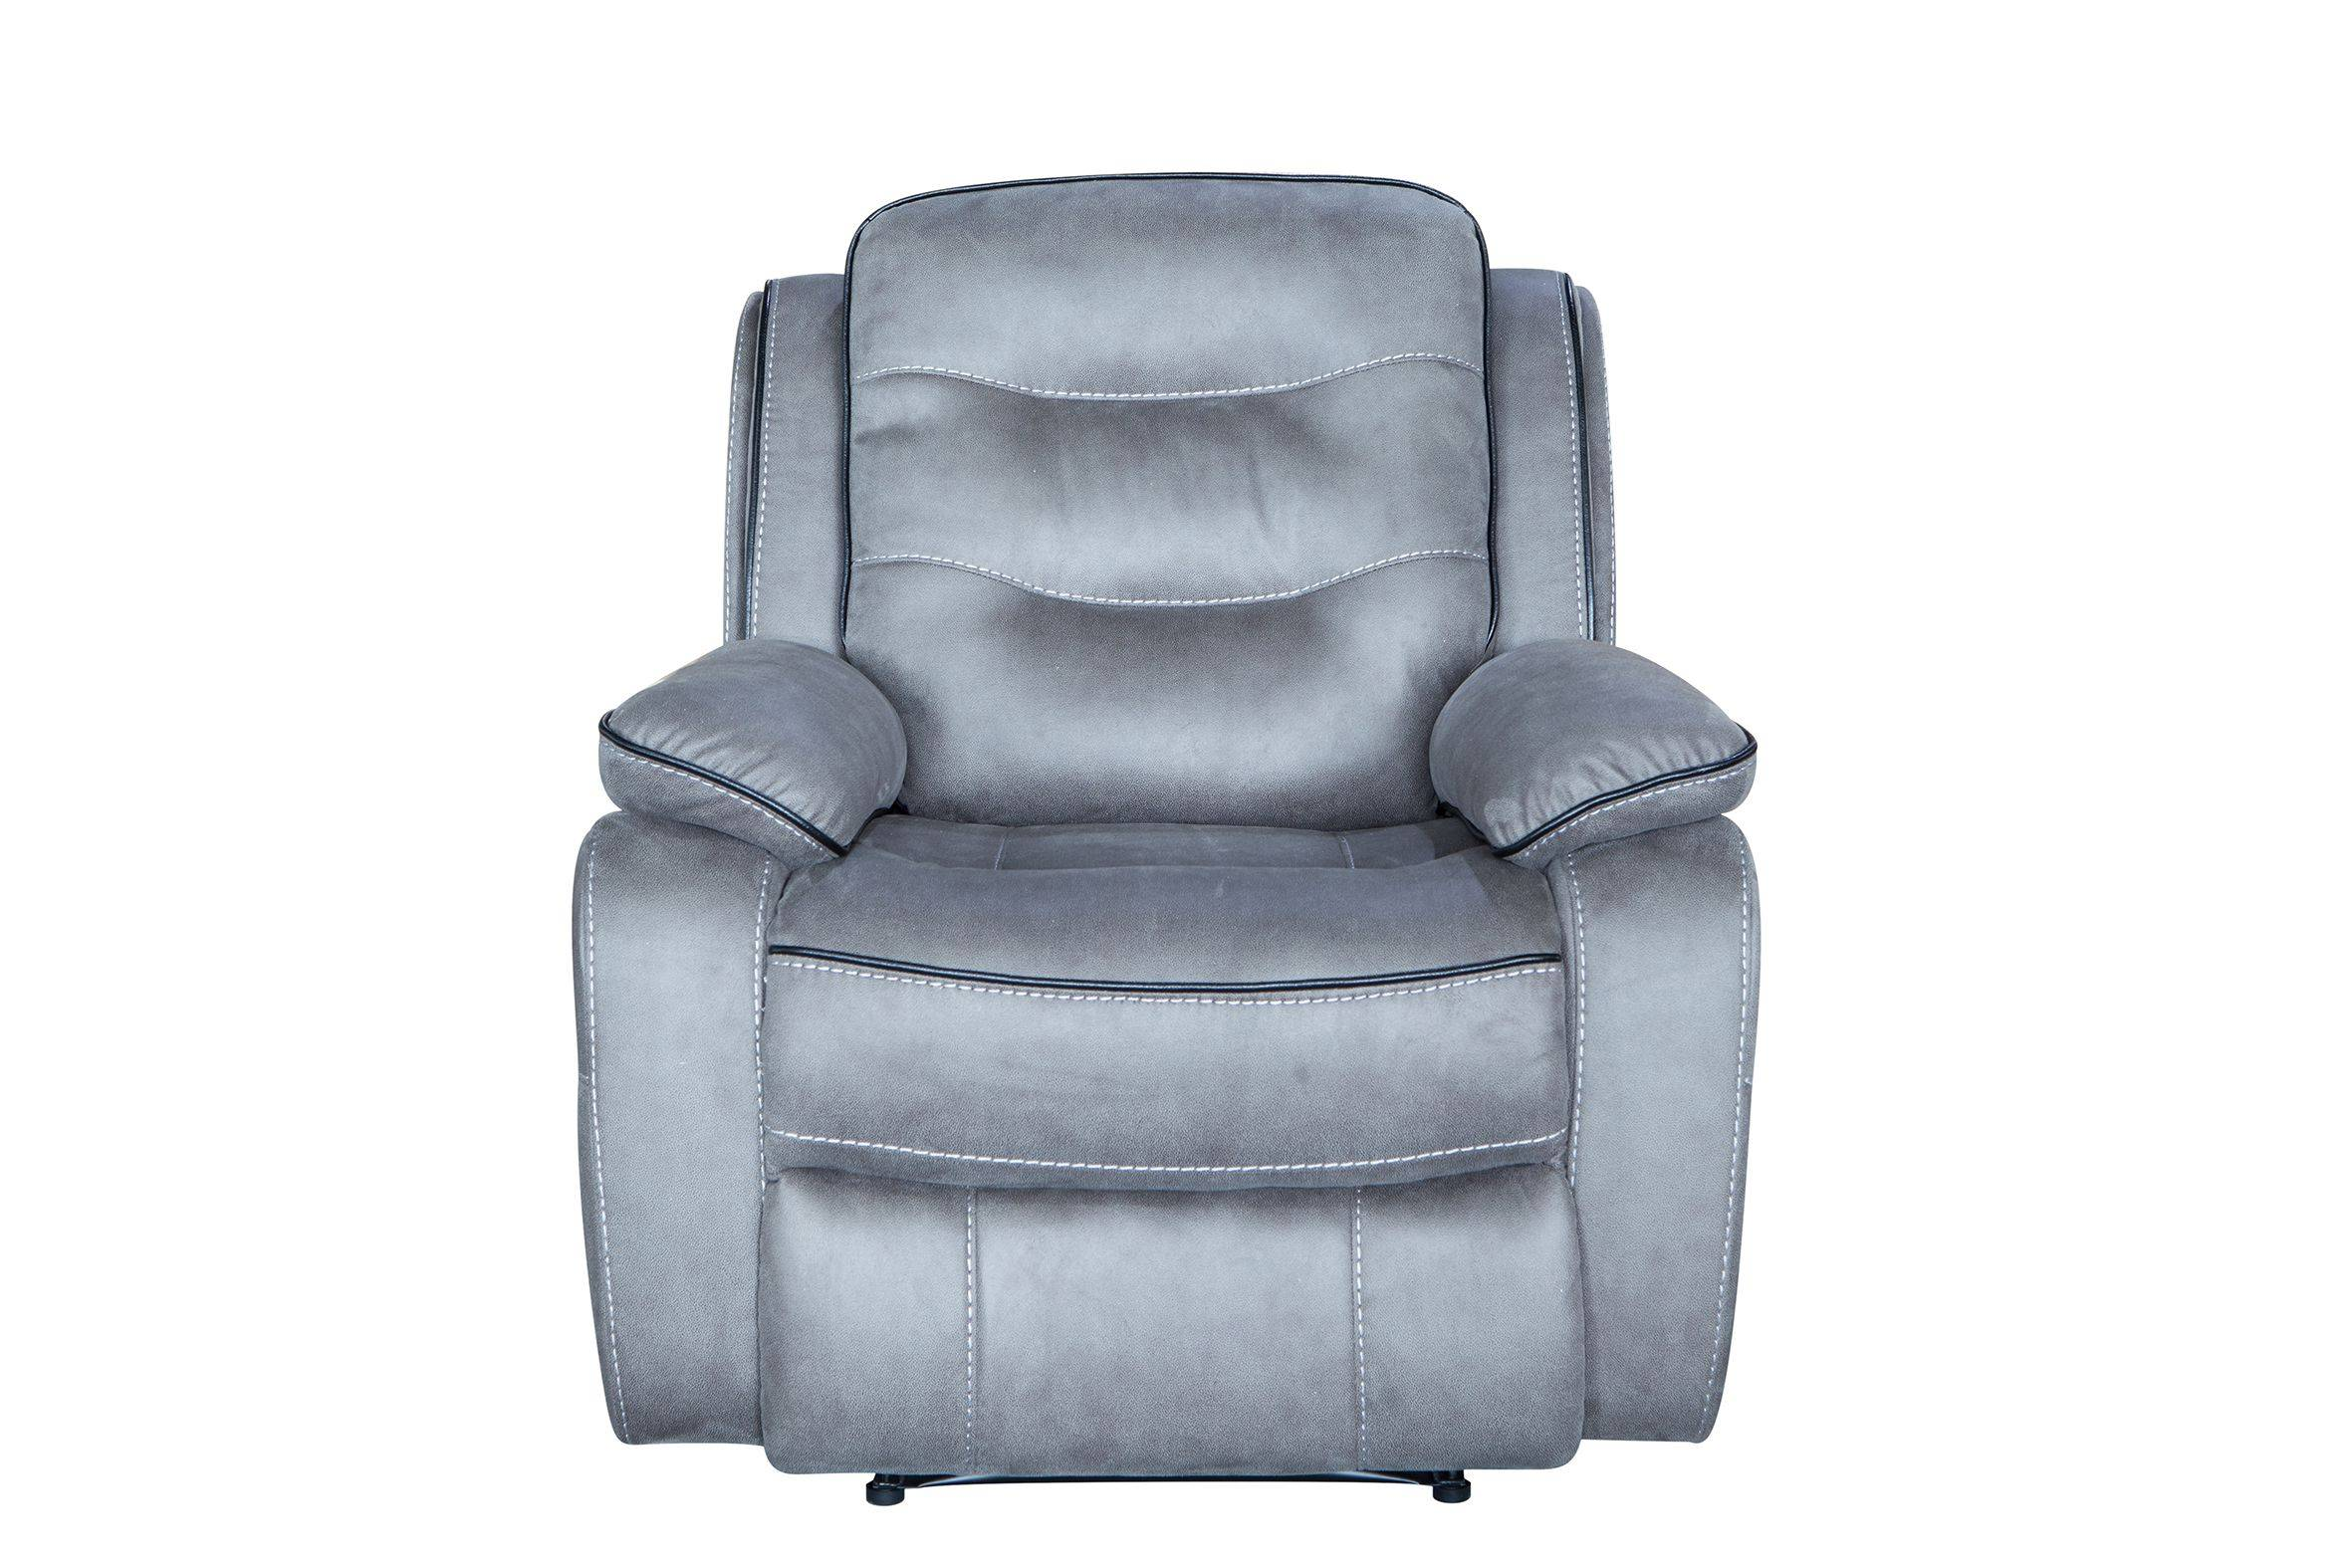 2019 High quality home furniture leather 3 seat recliner sofa